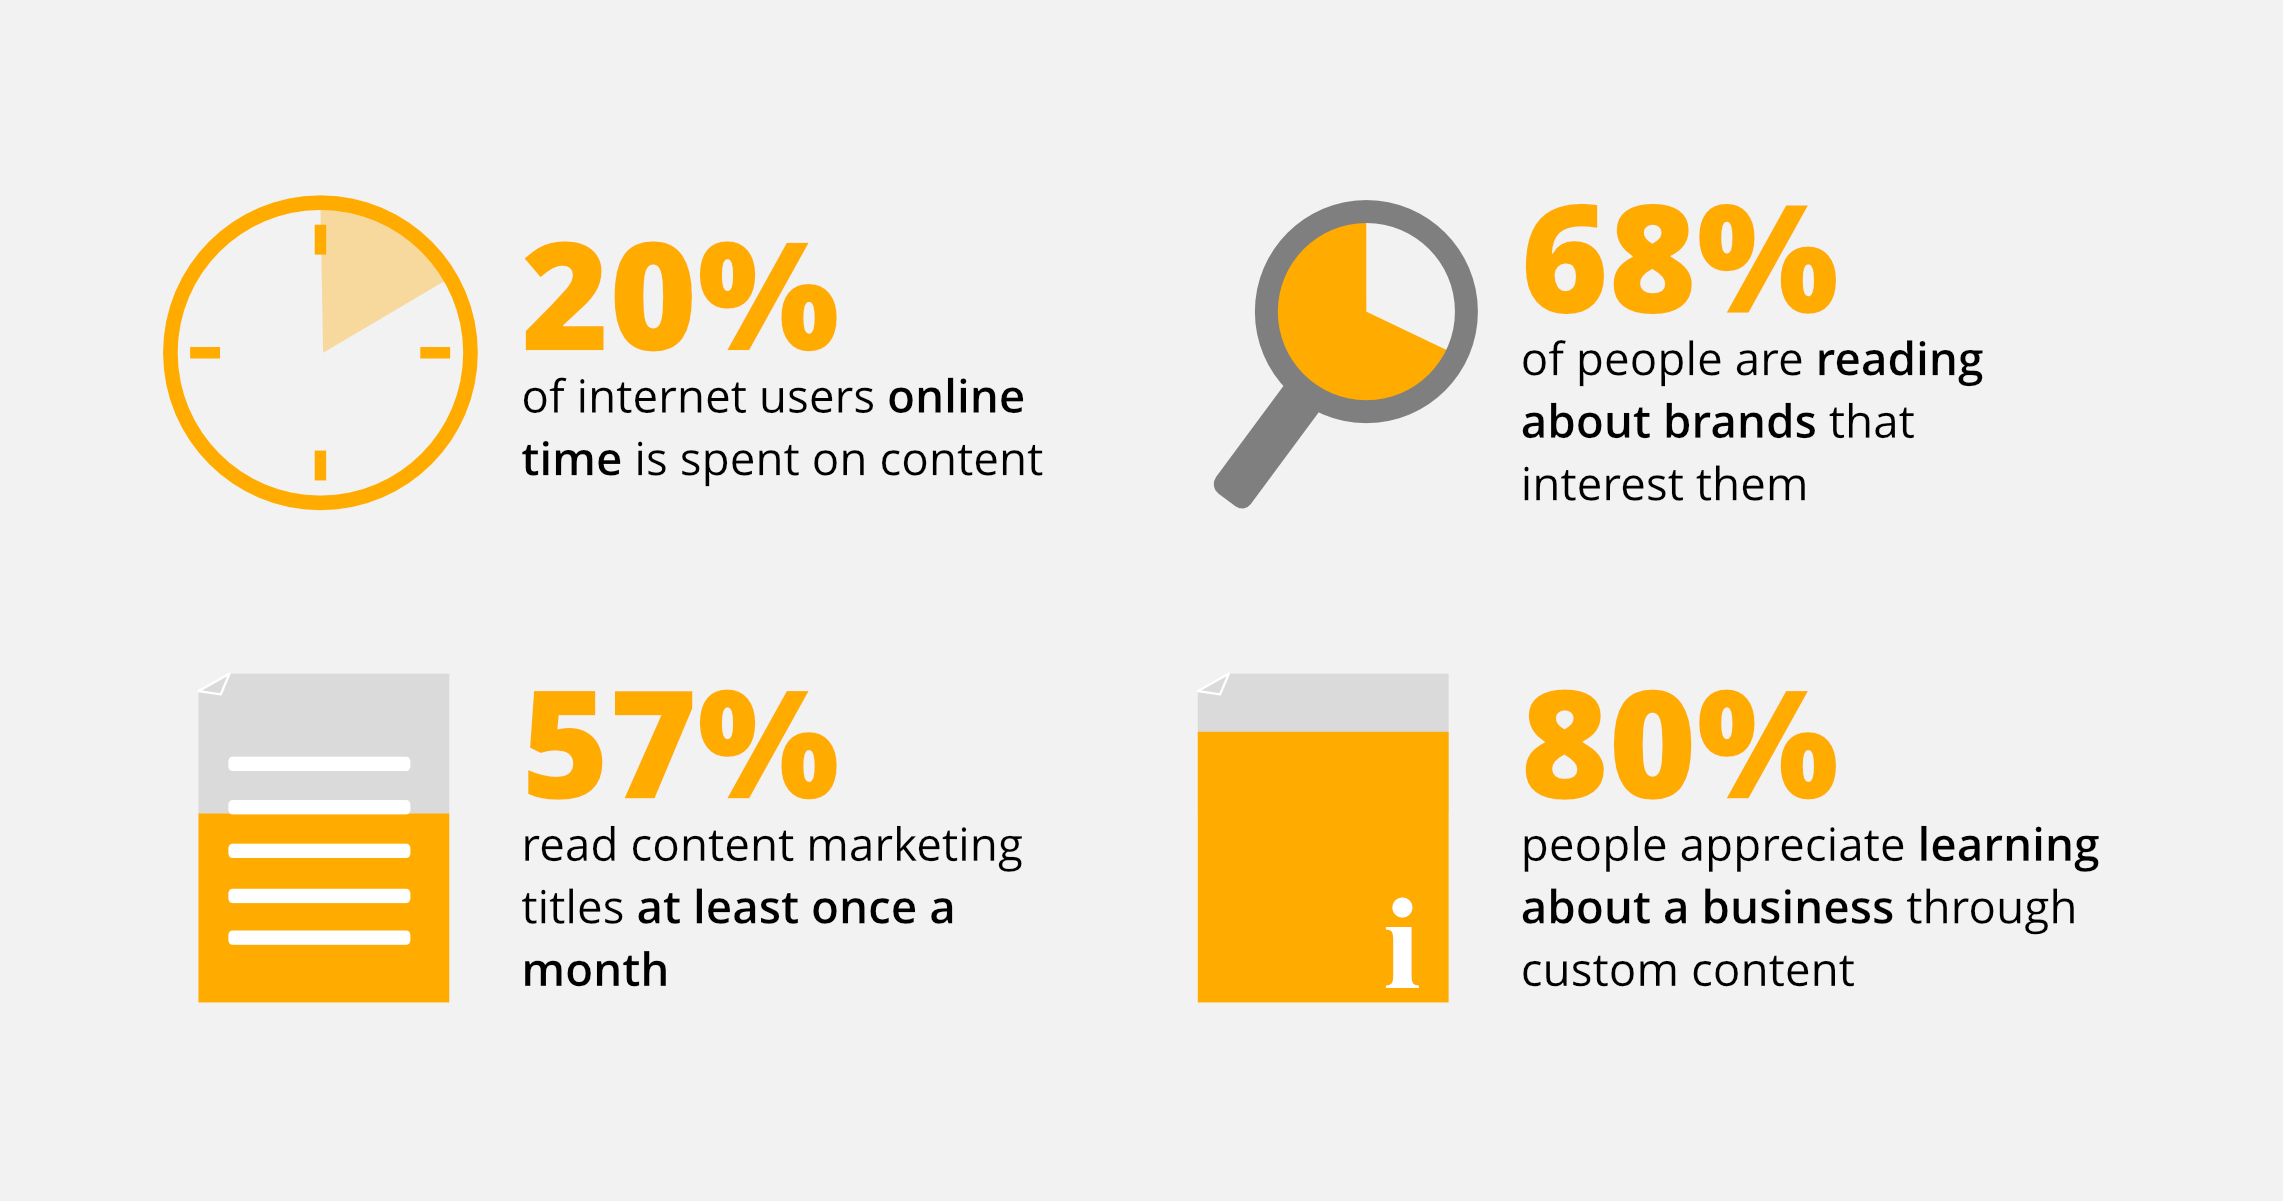 Consumers spend increasing amounts of time with online content for their lives and work.